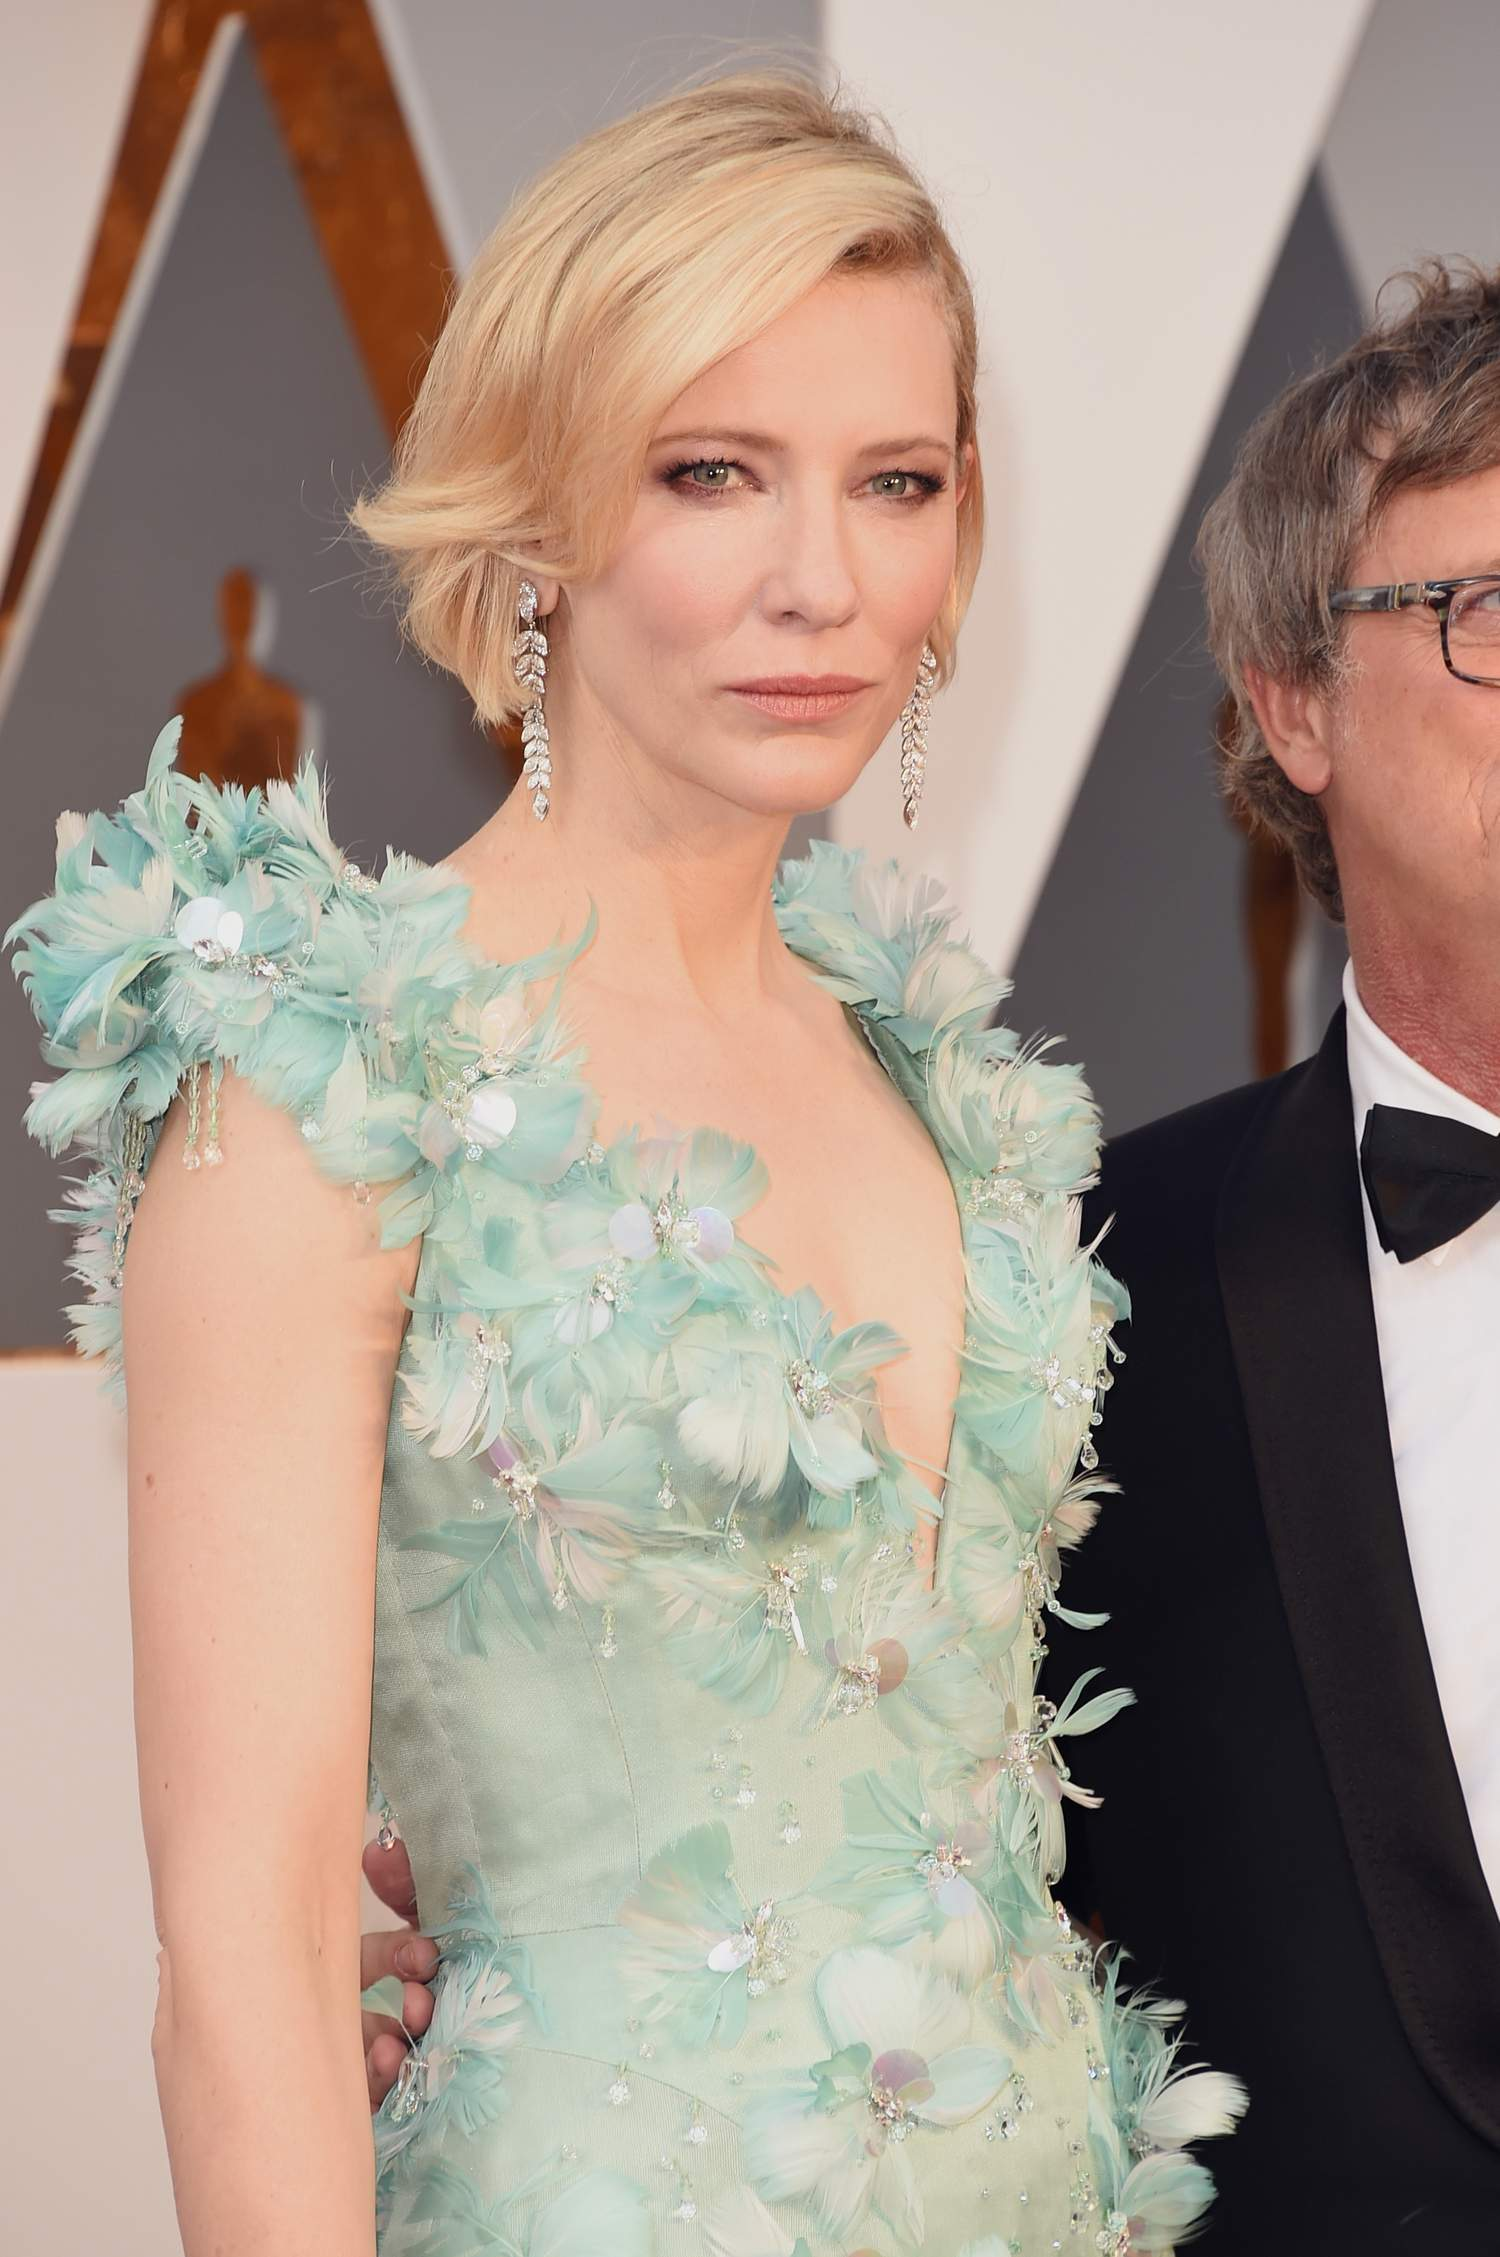 Cate Blanchett at Annual Academy Awards-2